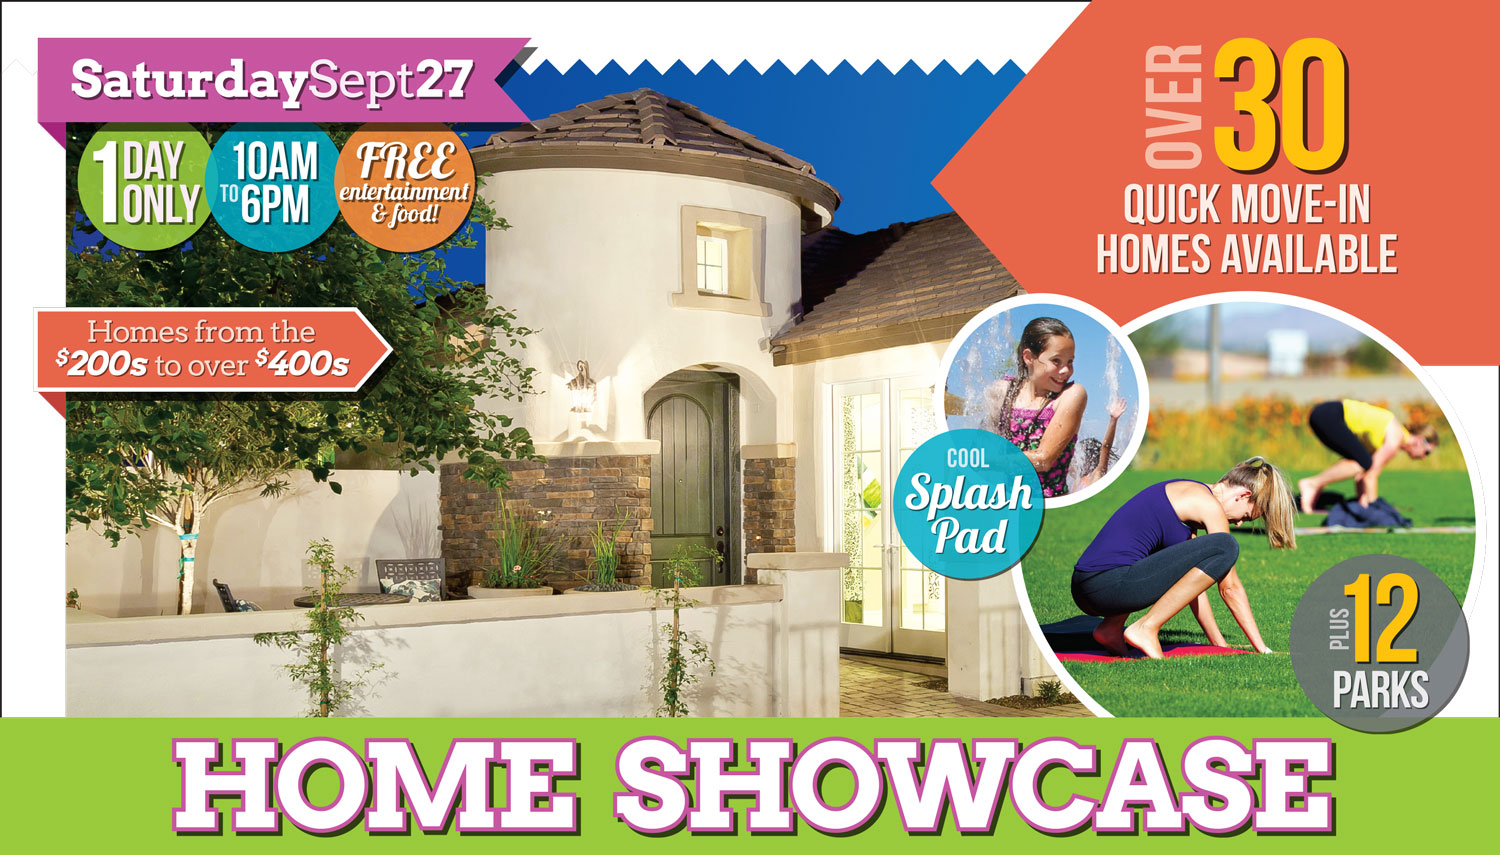 Home Showcase at Eastmark